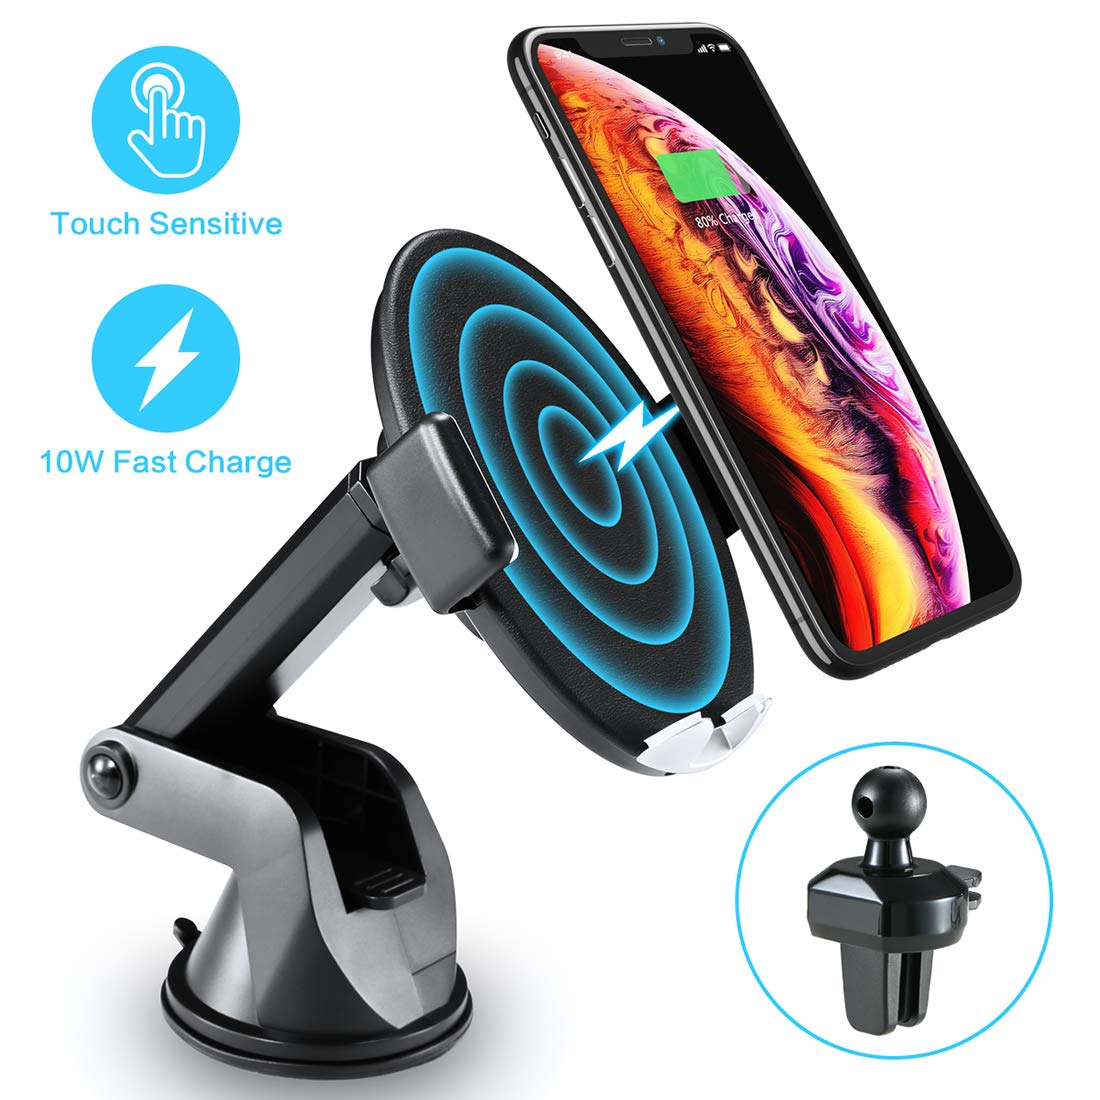 Wireless Car Charger with Touch Sensitive Clamp  10W Fast Wireless Car Charger Mount Phone Holder Qi Wireless Car Charger Compatible for iPhone Xs Max/XR/X/8/8+ Samsung S10/9/8 Note 9 and More